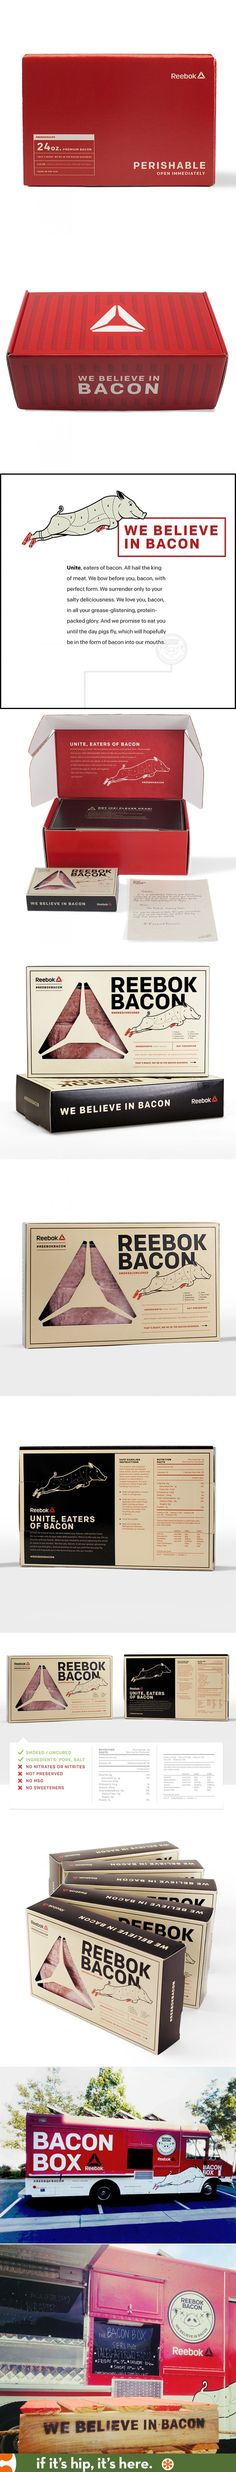 Reebok Bacon package design, food truck design and branding to promote the CrossFit Games.